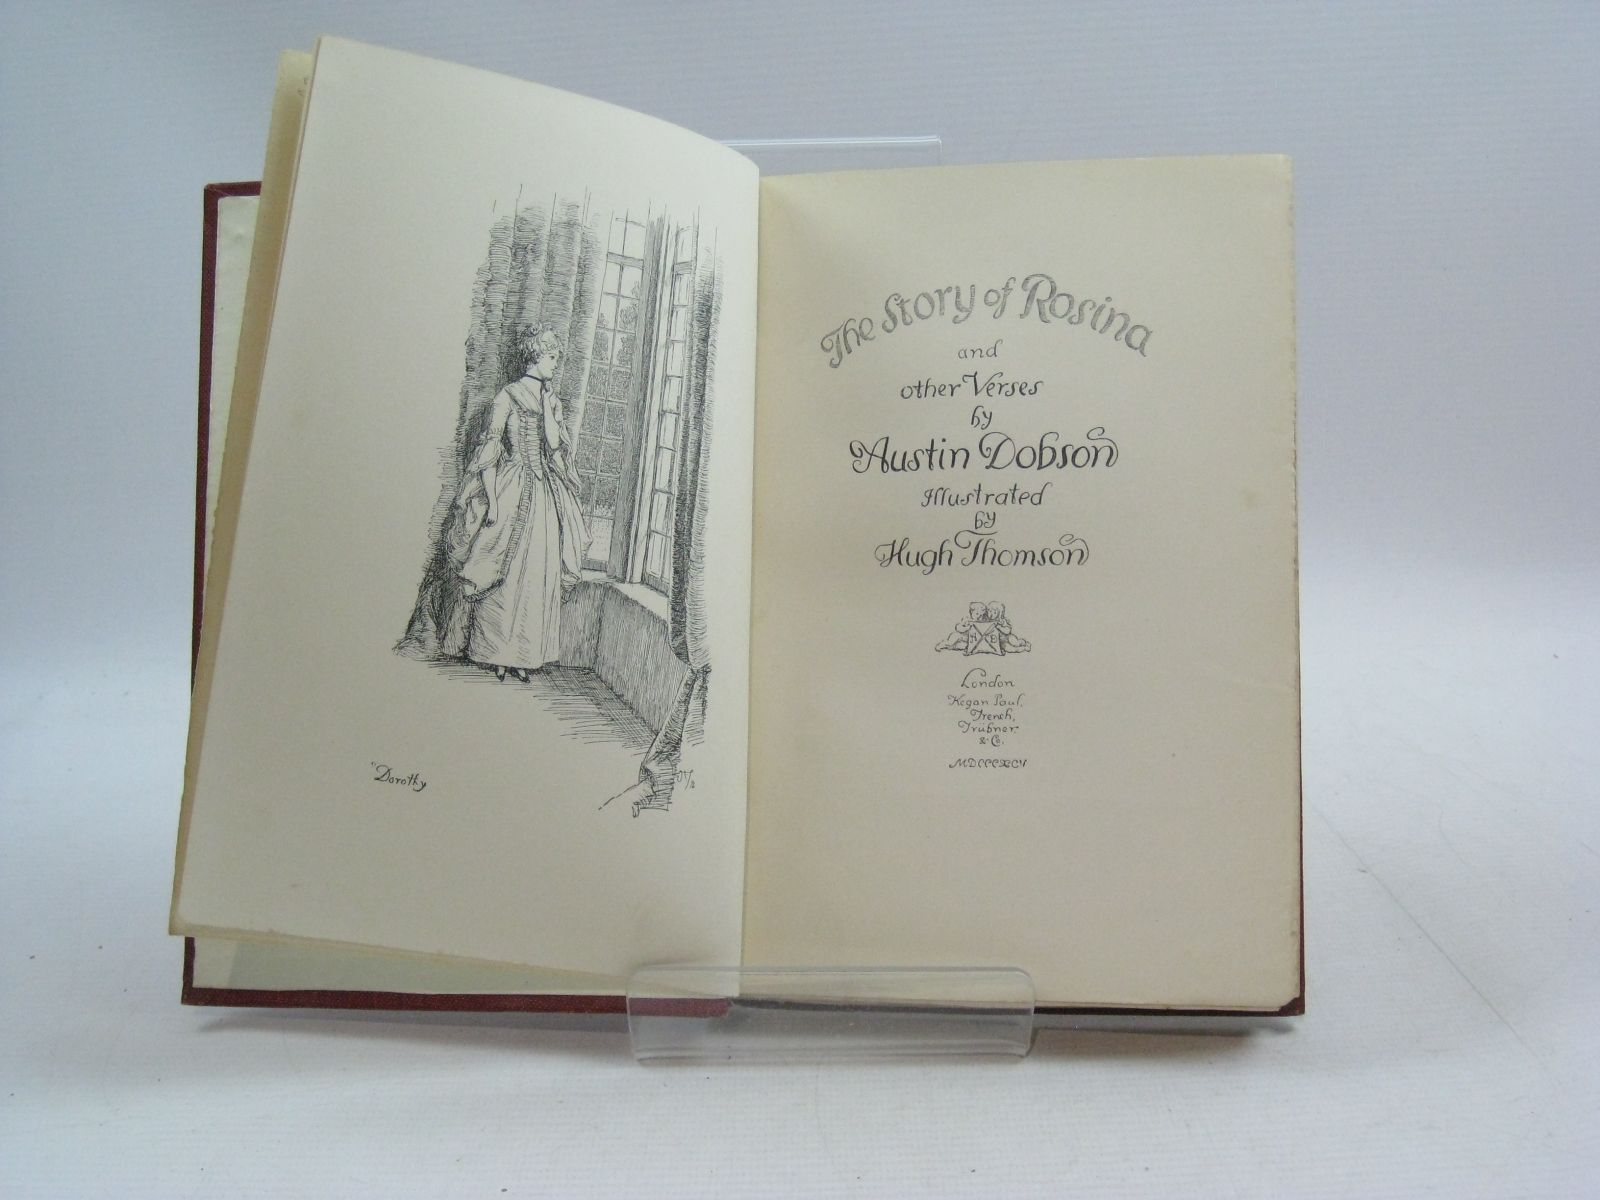 Photo of THE STORY OF ROSINA & OTHER VERSES written by Dobson, Austin illustrated by Thomson, Hugh published by Kegan Paul, Trench, Trubner & Co. (STOCK CODE: 1315040)  for sale by Stella & Rose's Books